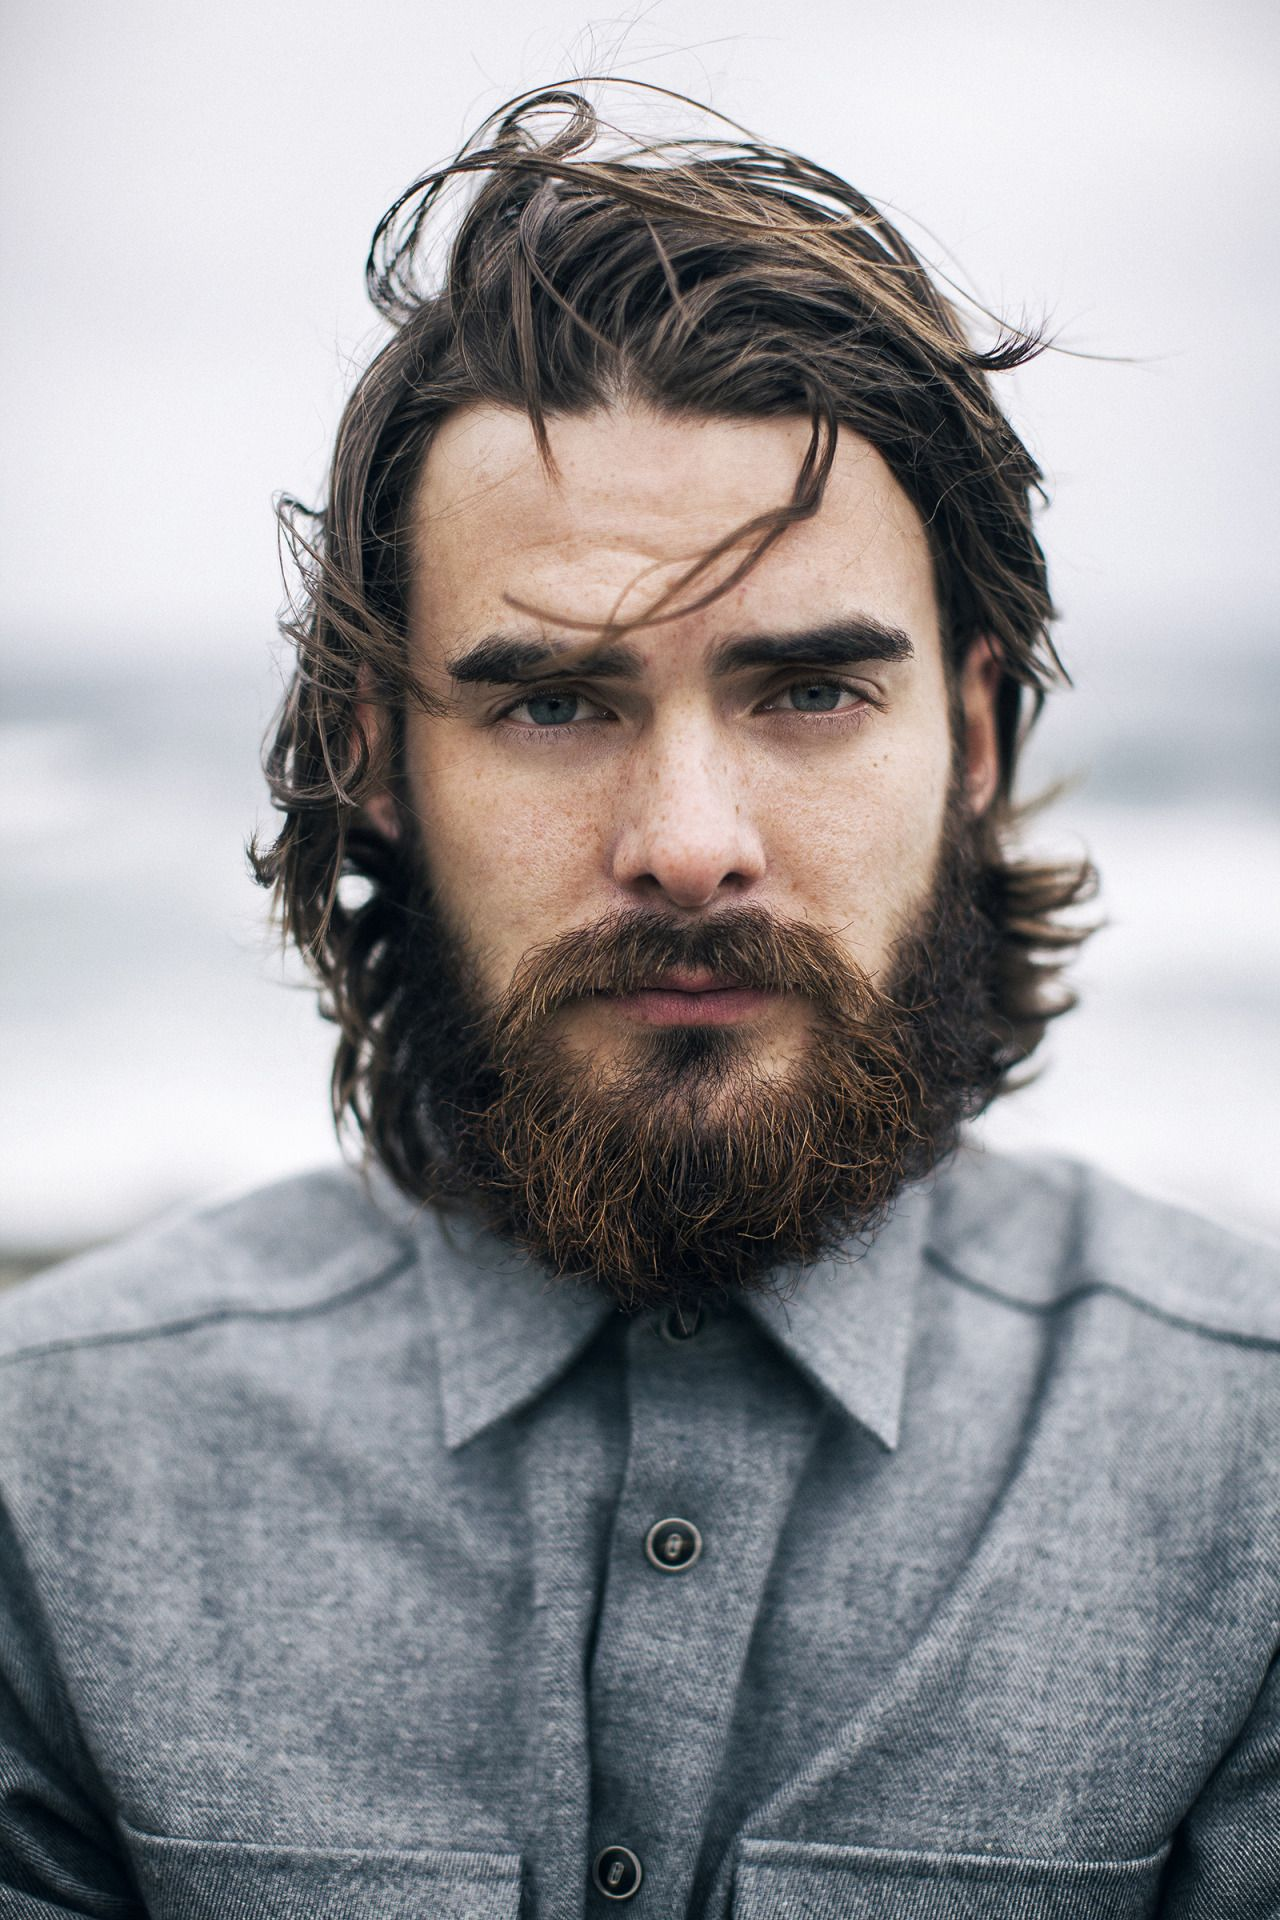 Skin growing over nose piercing  Photo Dreaming In blue  Man style Beard styles and Style men